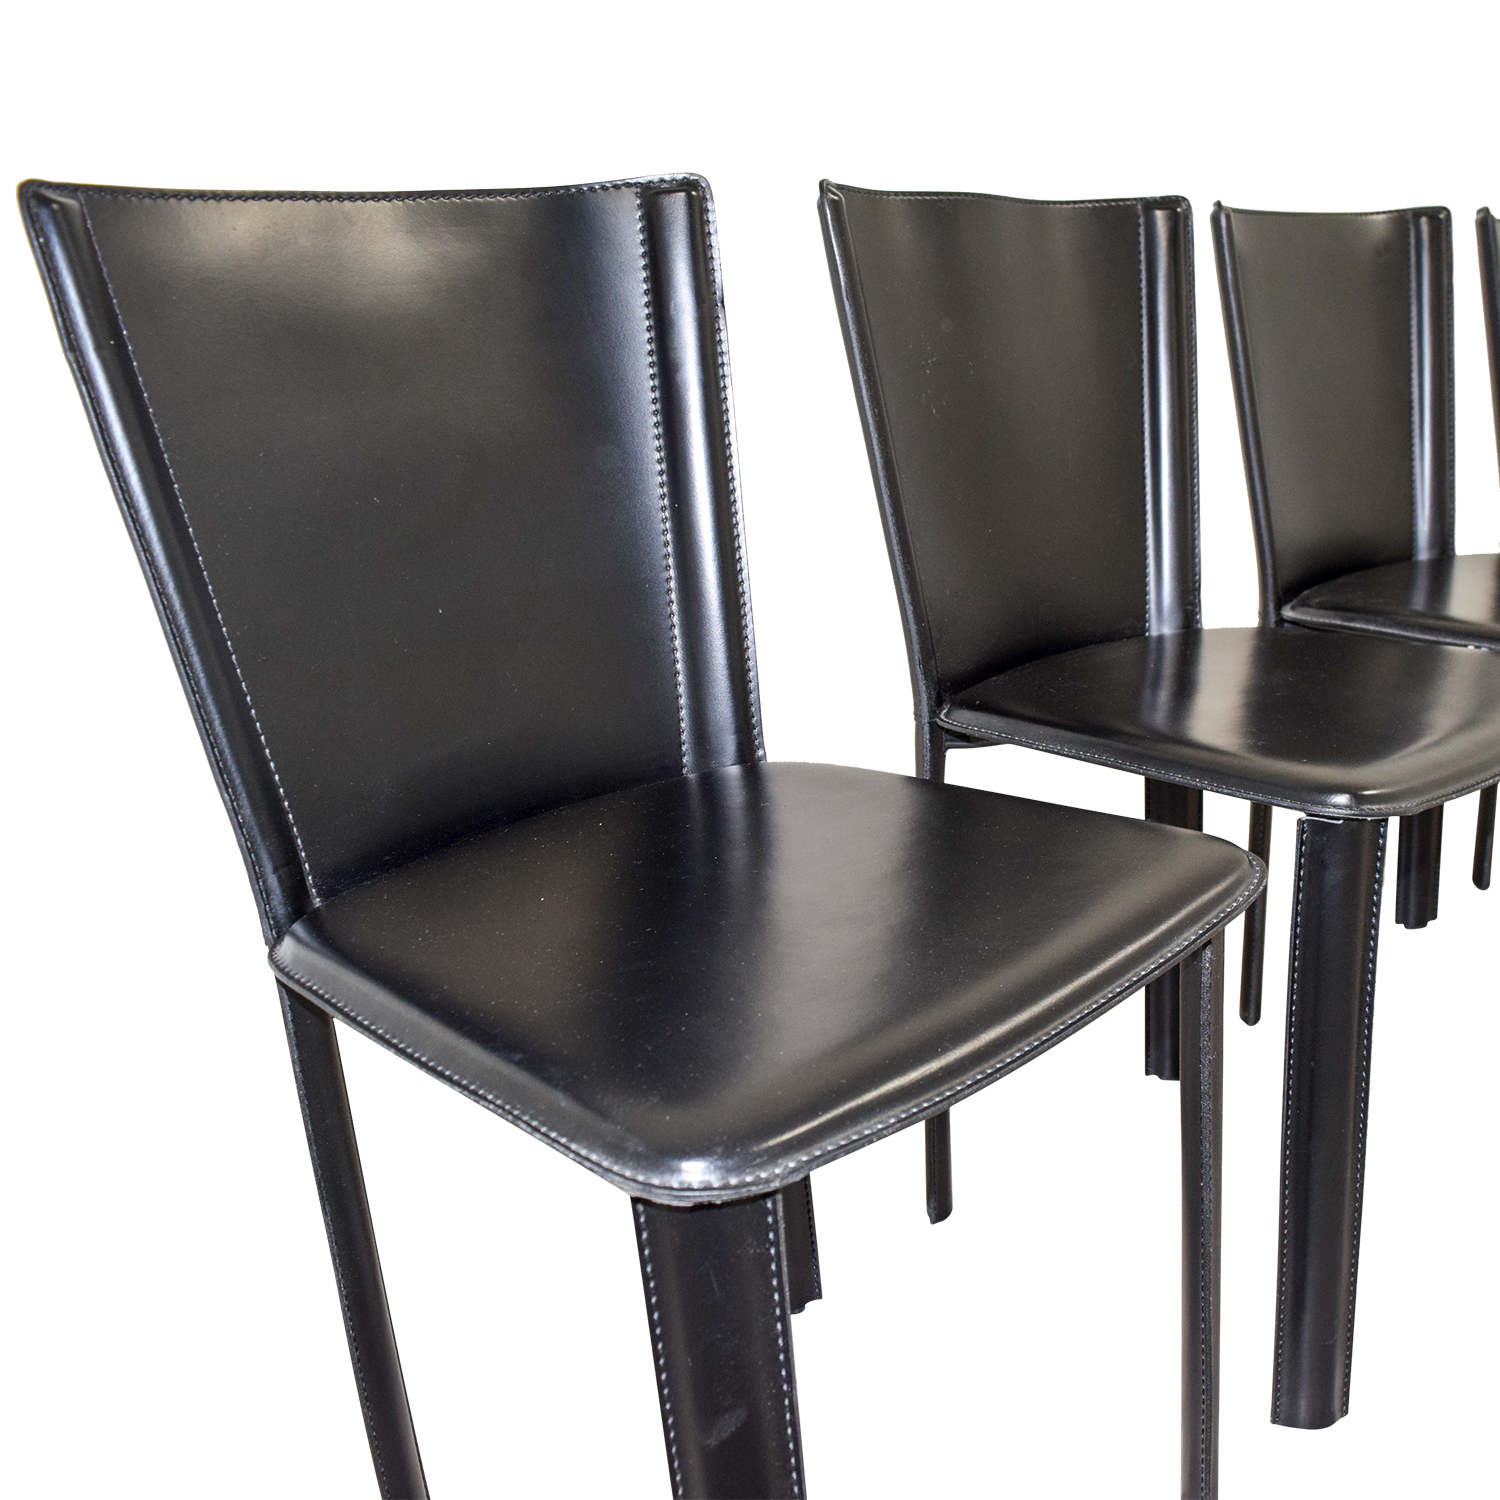 buy Design Within Reach Allegro Black Dining Chairs Design Within Reach